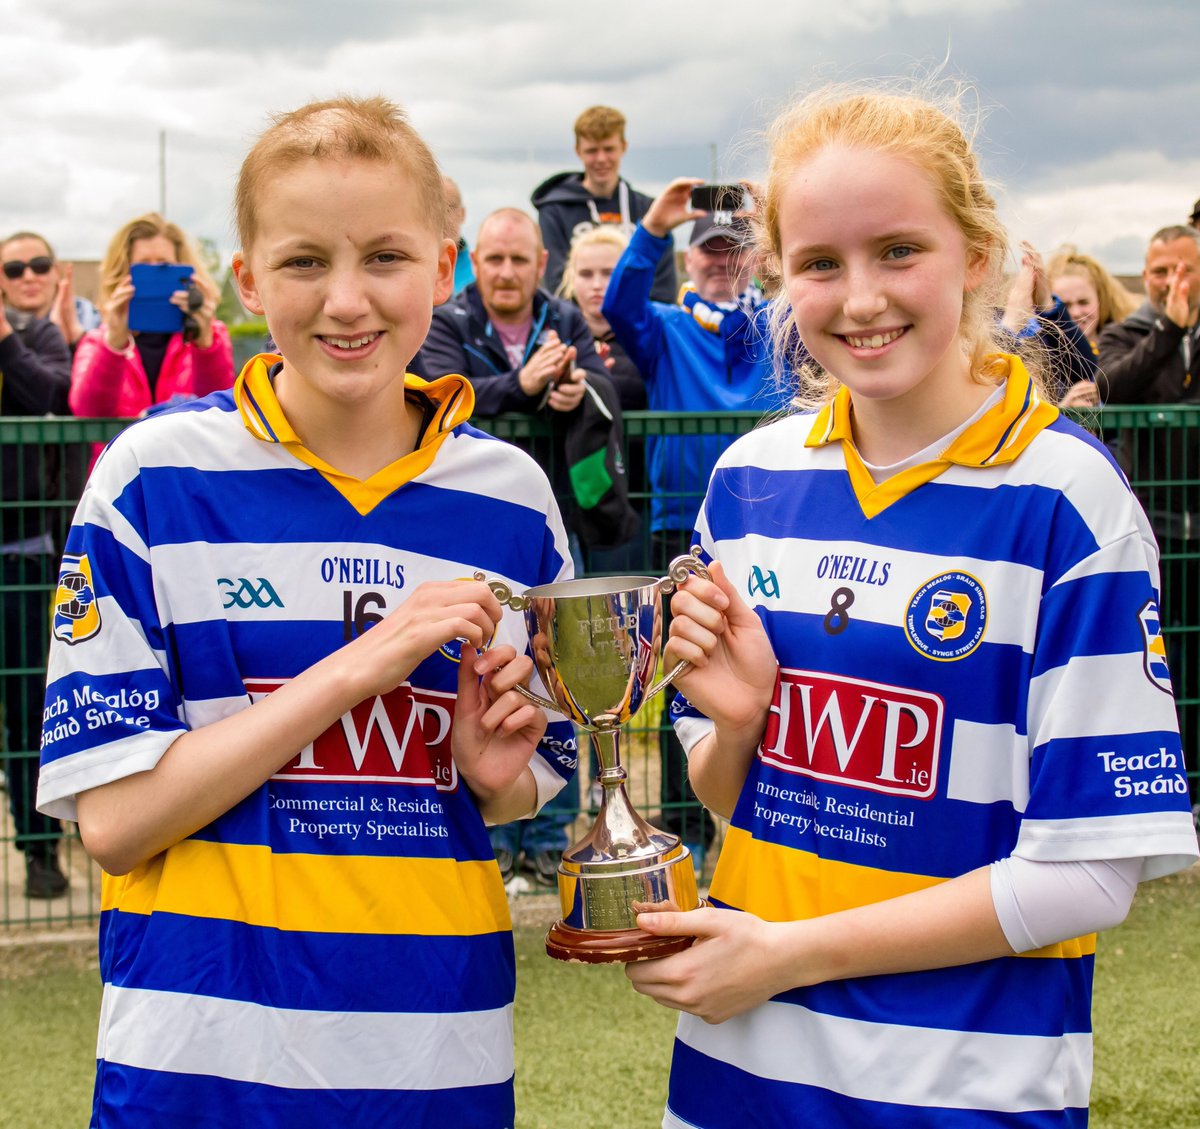 Fantastic to see Freya Fitzpatrick out playing in our @AIGIreland Dublin Feile for her club @Tempsyngest this past weekend. Freya co captained her team to the Div 5 Feile title, what an inspiration Freya is to us all! #AIGFeile19